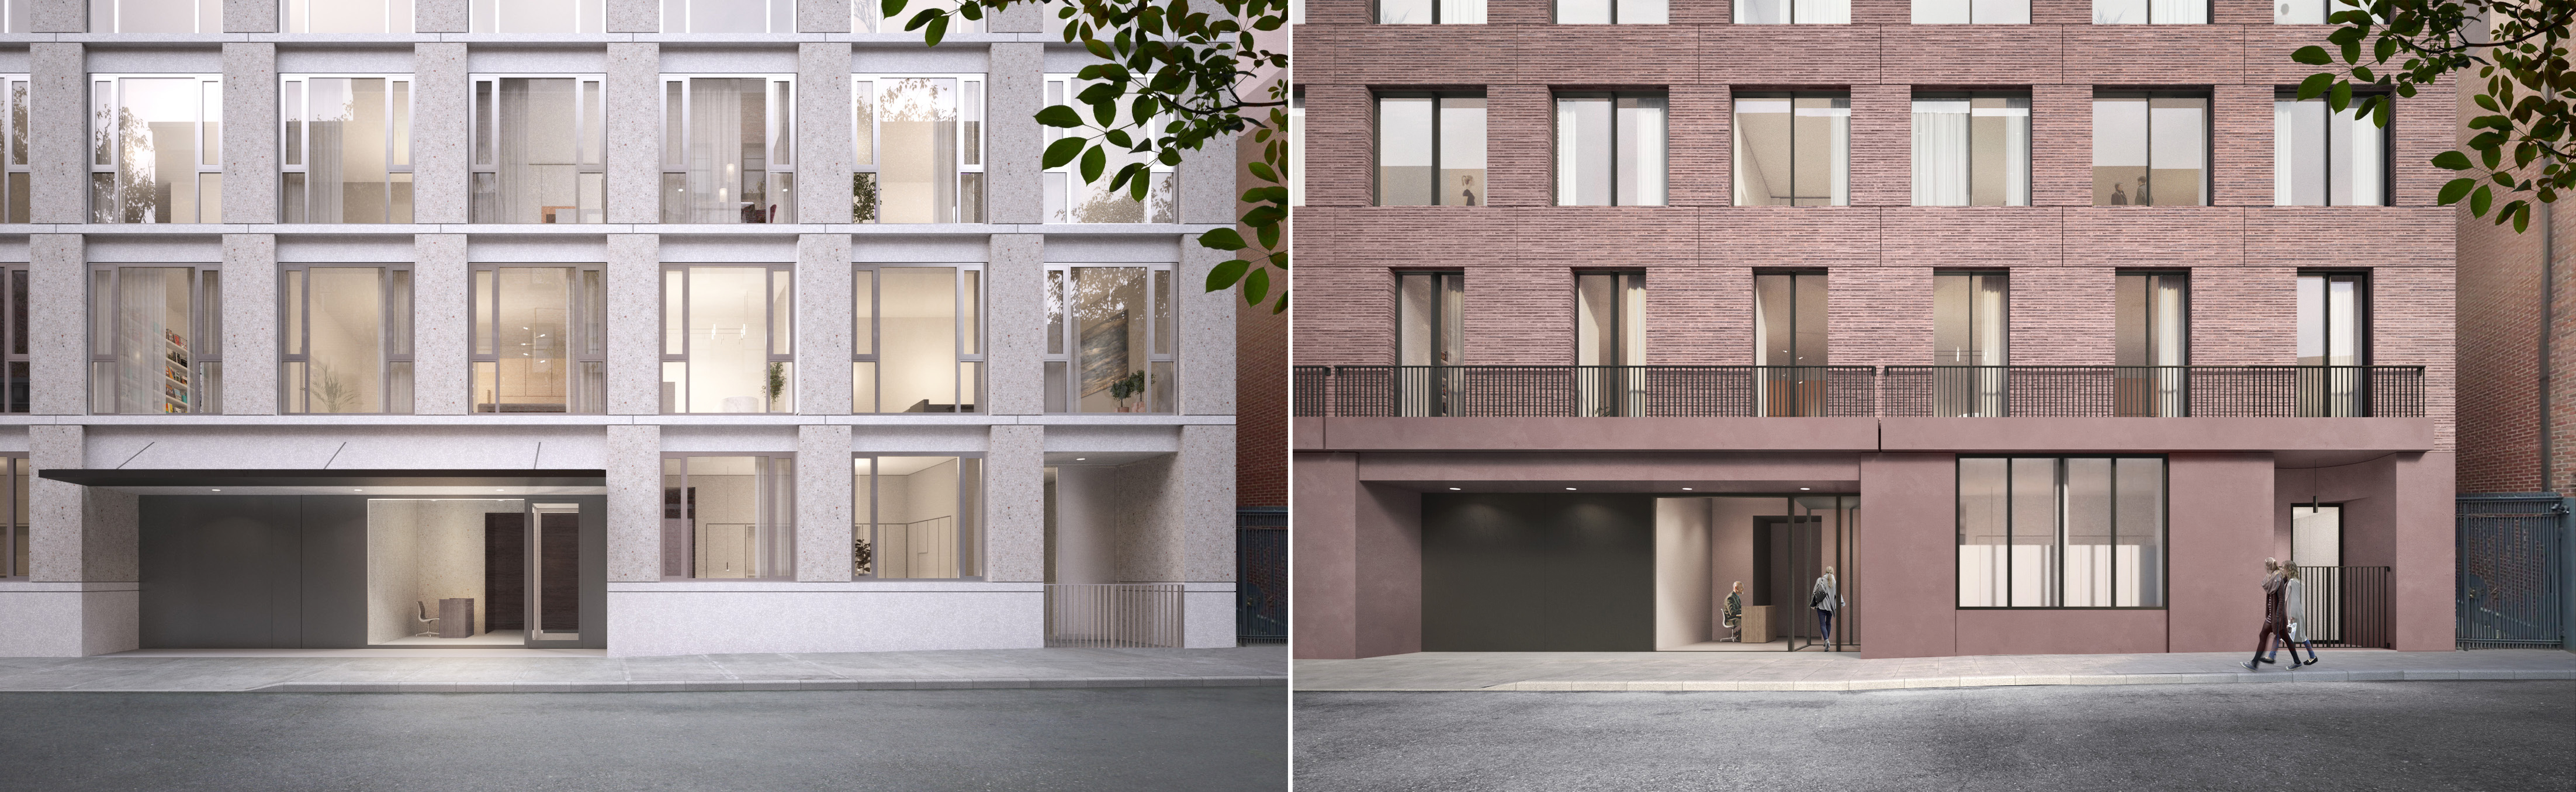 revised design for new west village residential building at 11 19 previous and revised proposals for 11 19 jane street by sir david chipperfield